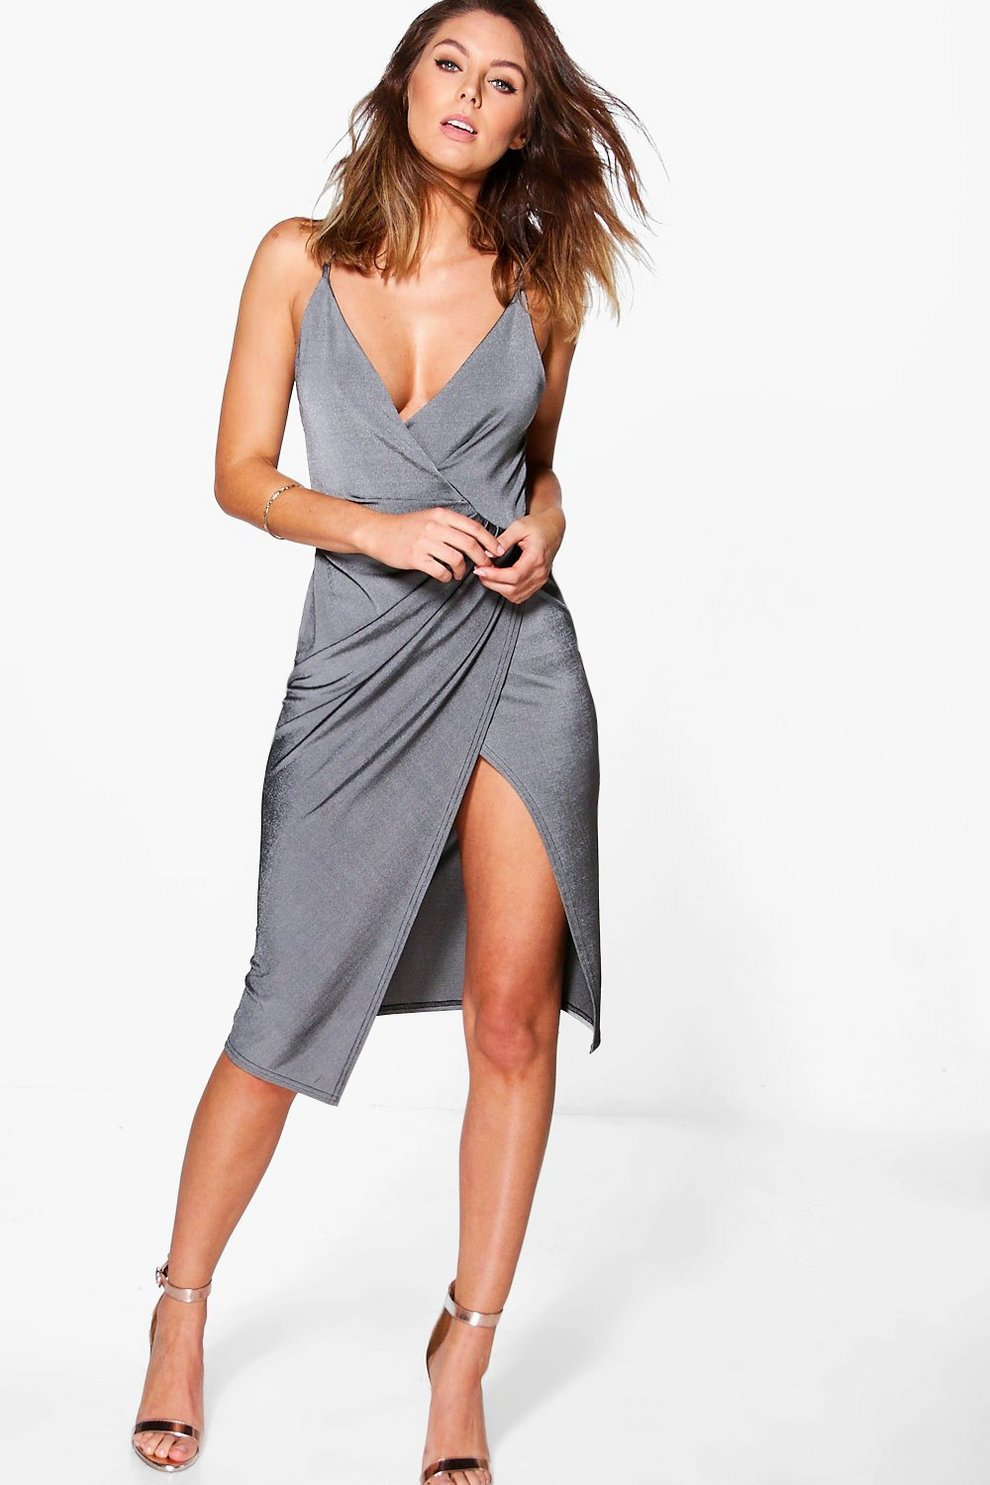 shop draped original how neck midi women dress v buy to where heritage grey wear halston drapes